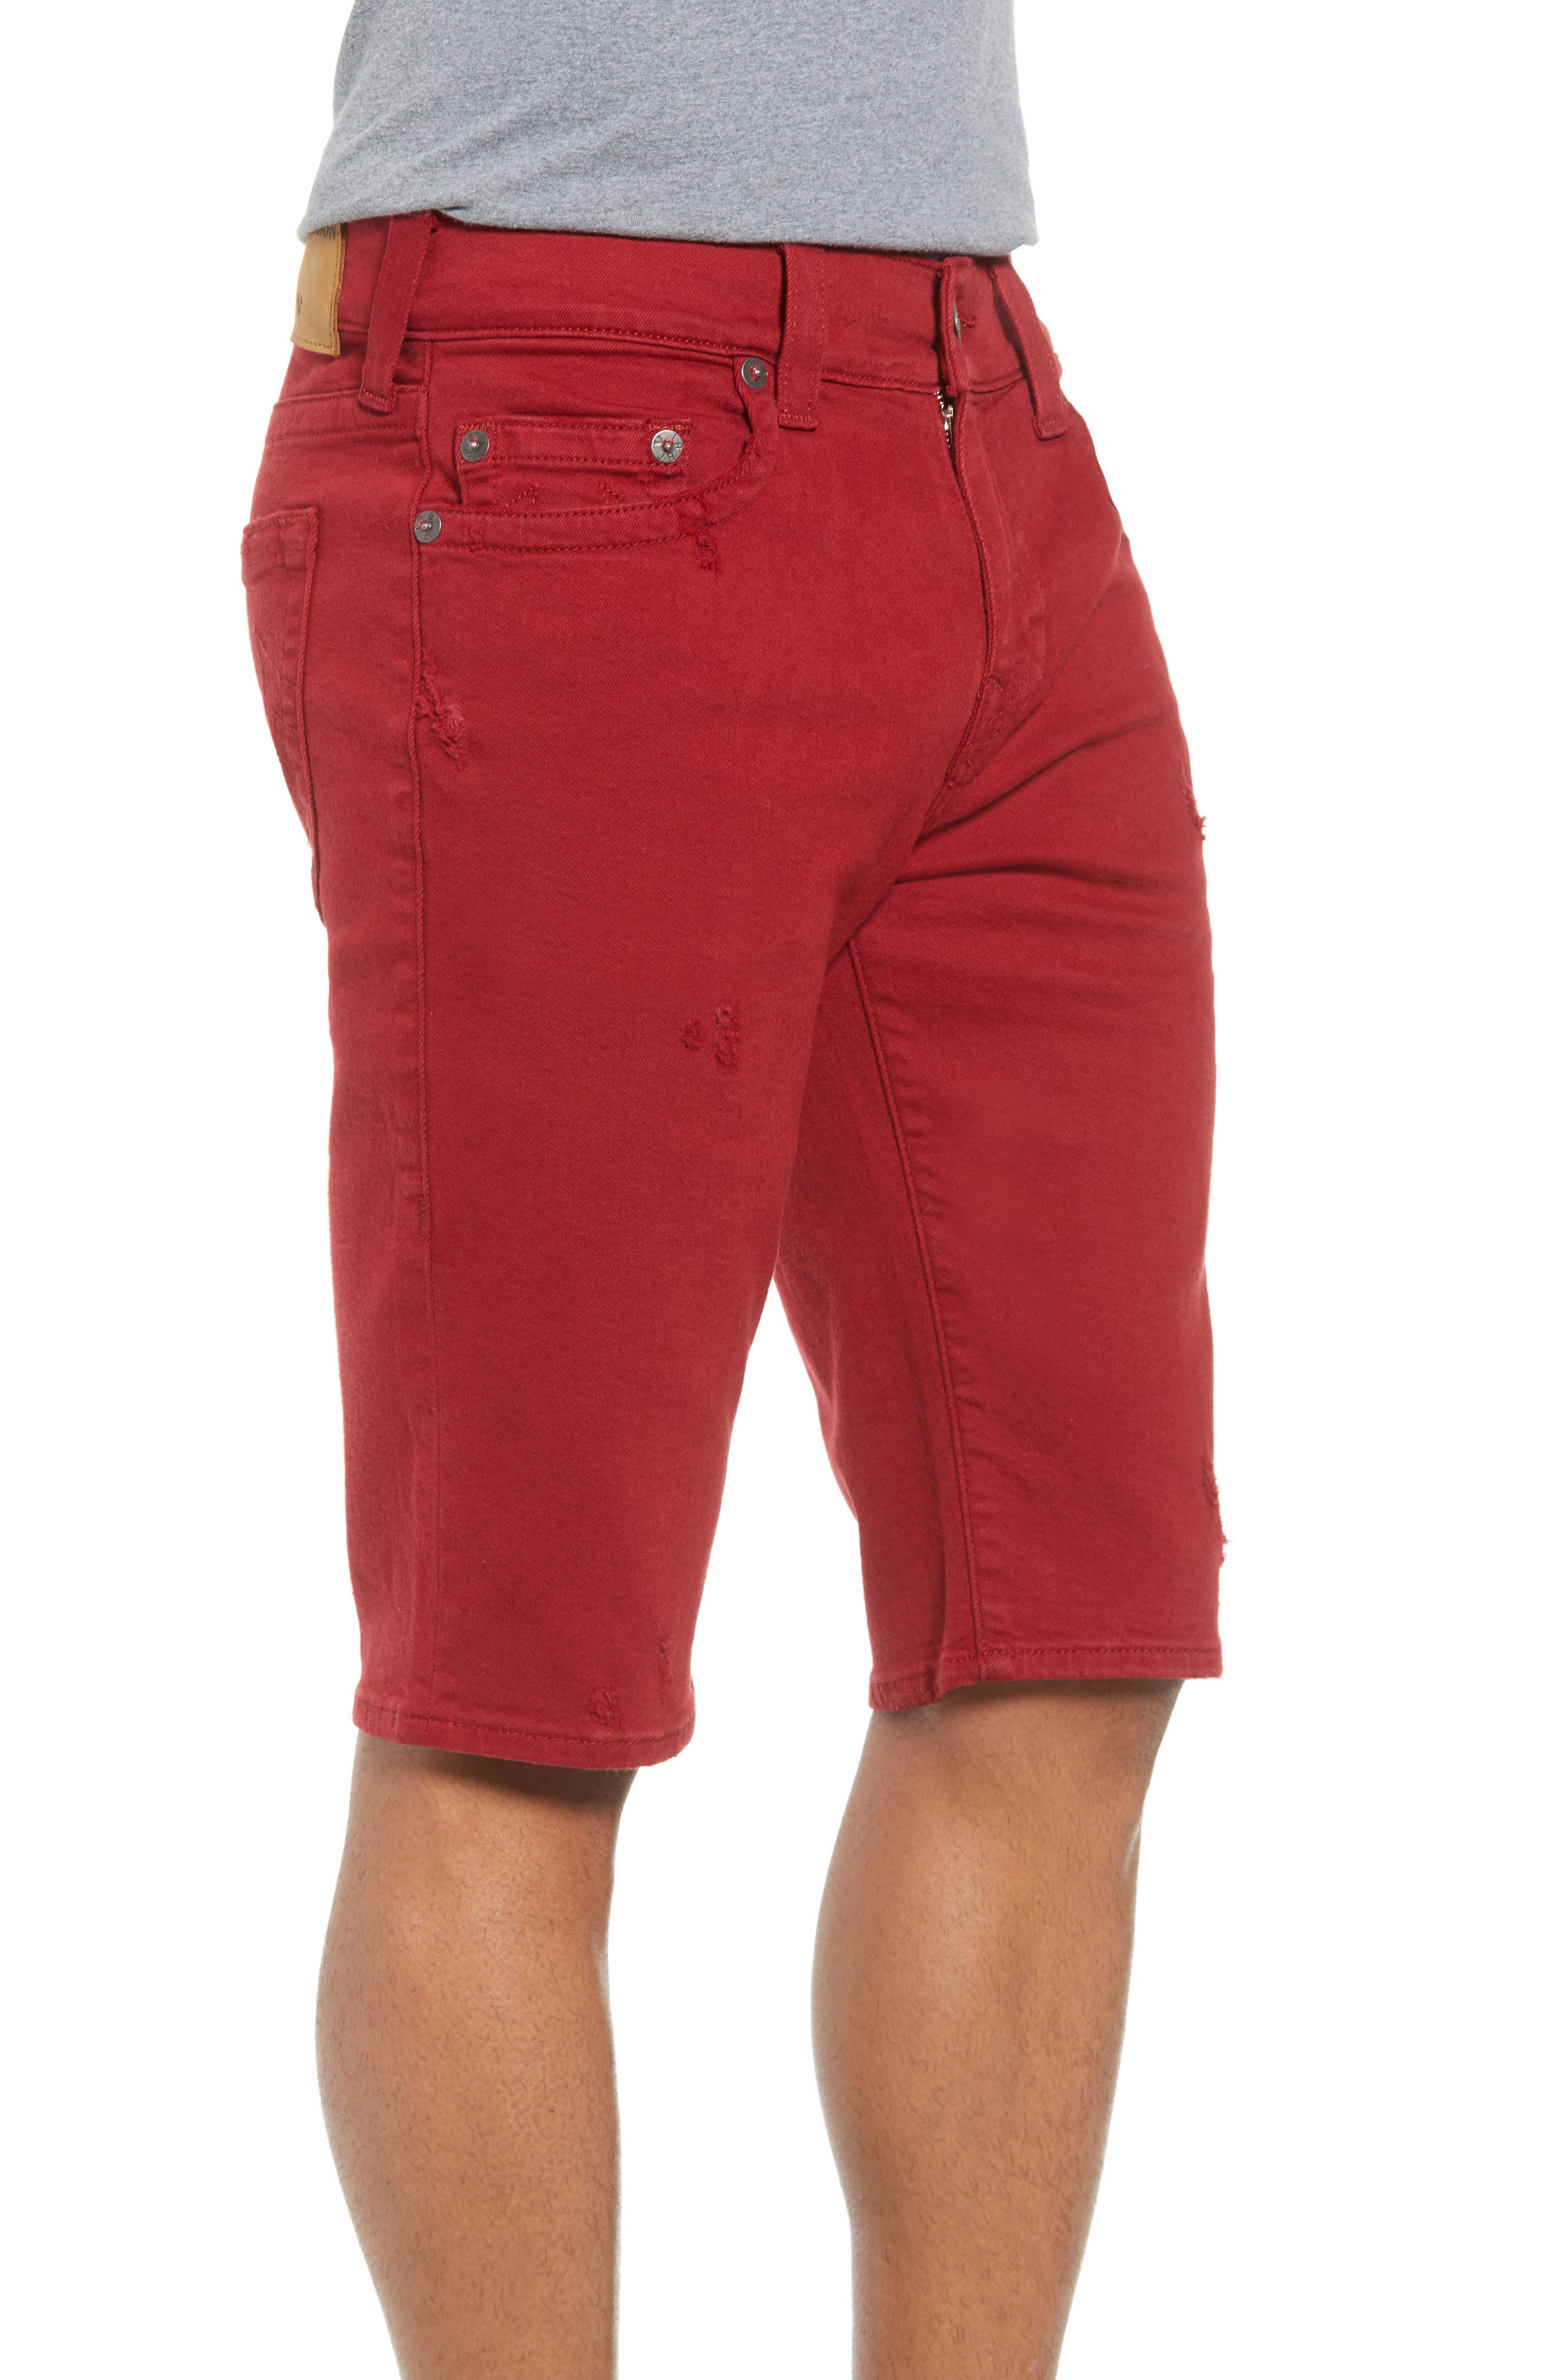 Ricky Relaxed Fit Shorts,                             Alternate thumbnail 3, color,                             Firecracker Red